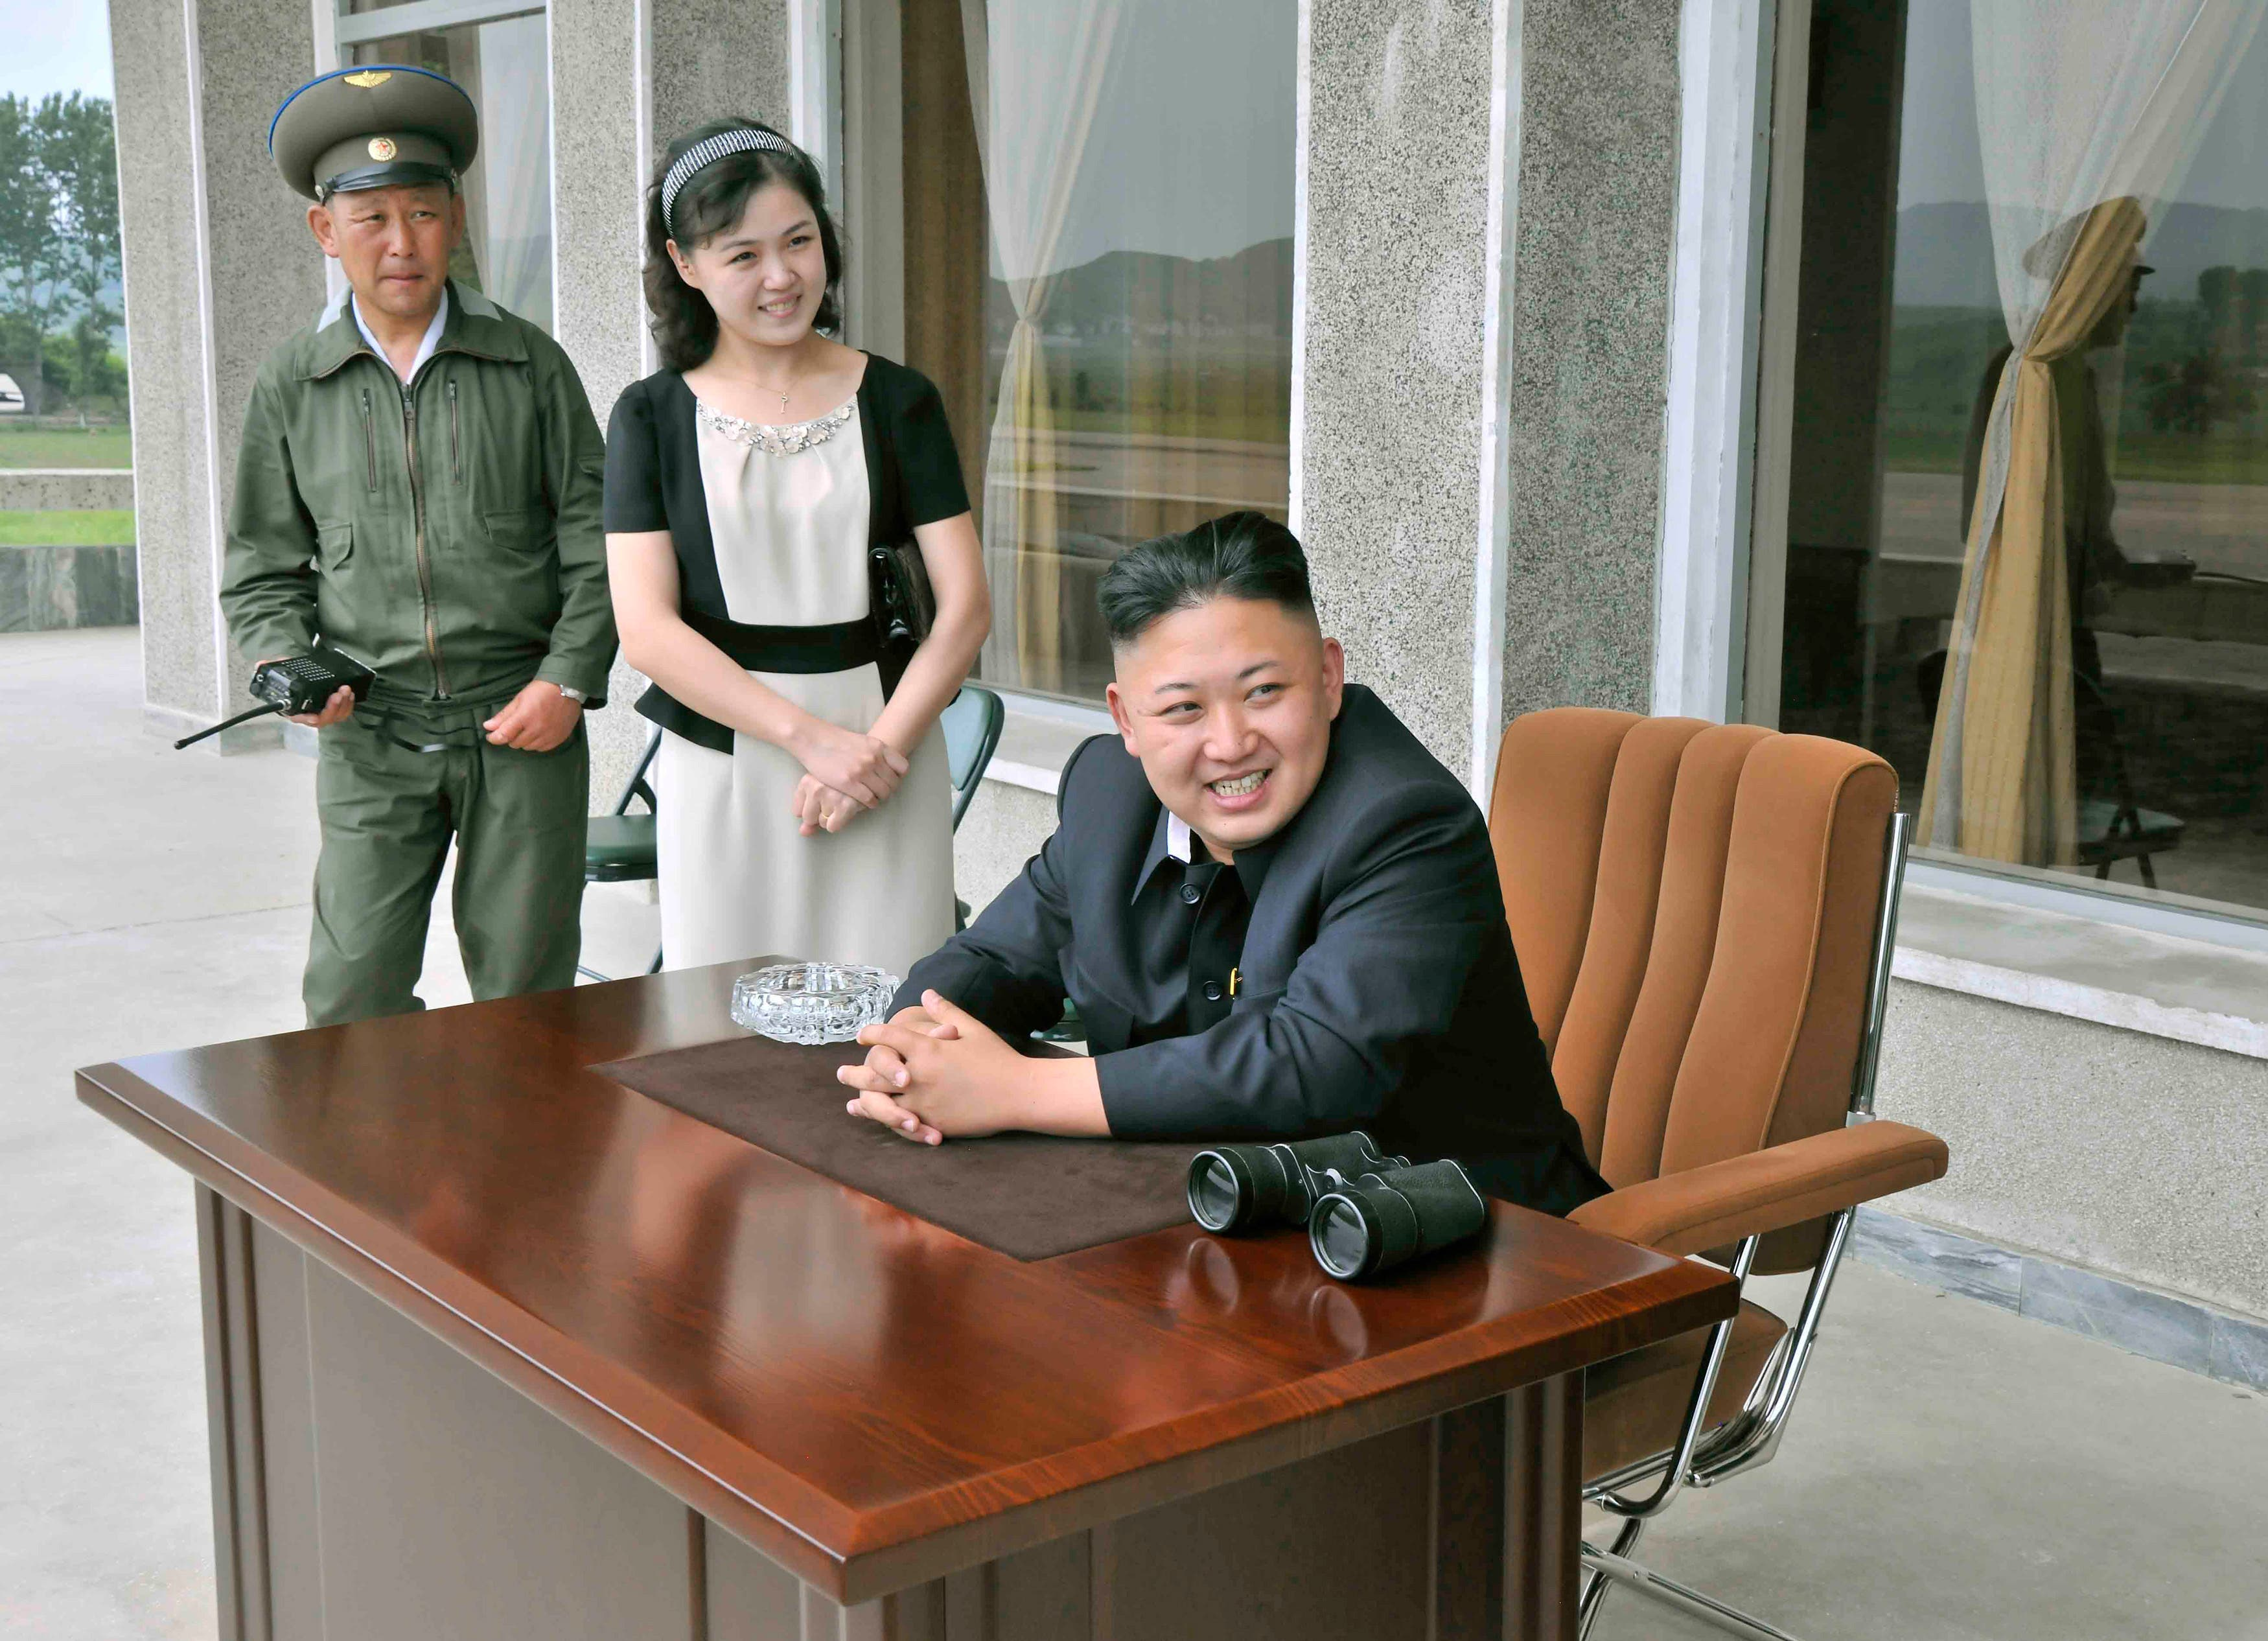 North Korean leader Kim Jong-un (front) and his wife Ri Sol-ju (2nd L) look on during a visit to a military base. (File photo Reuters)